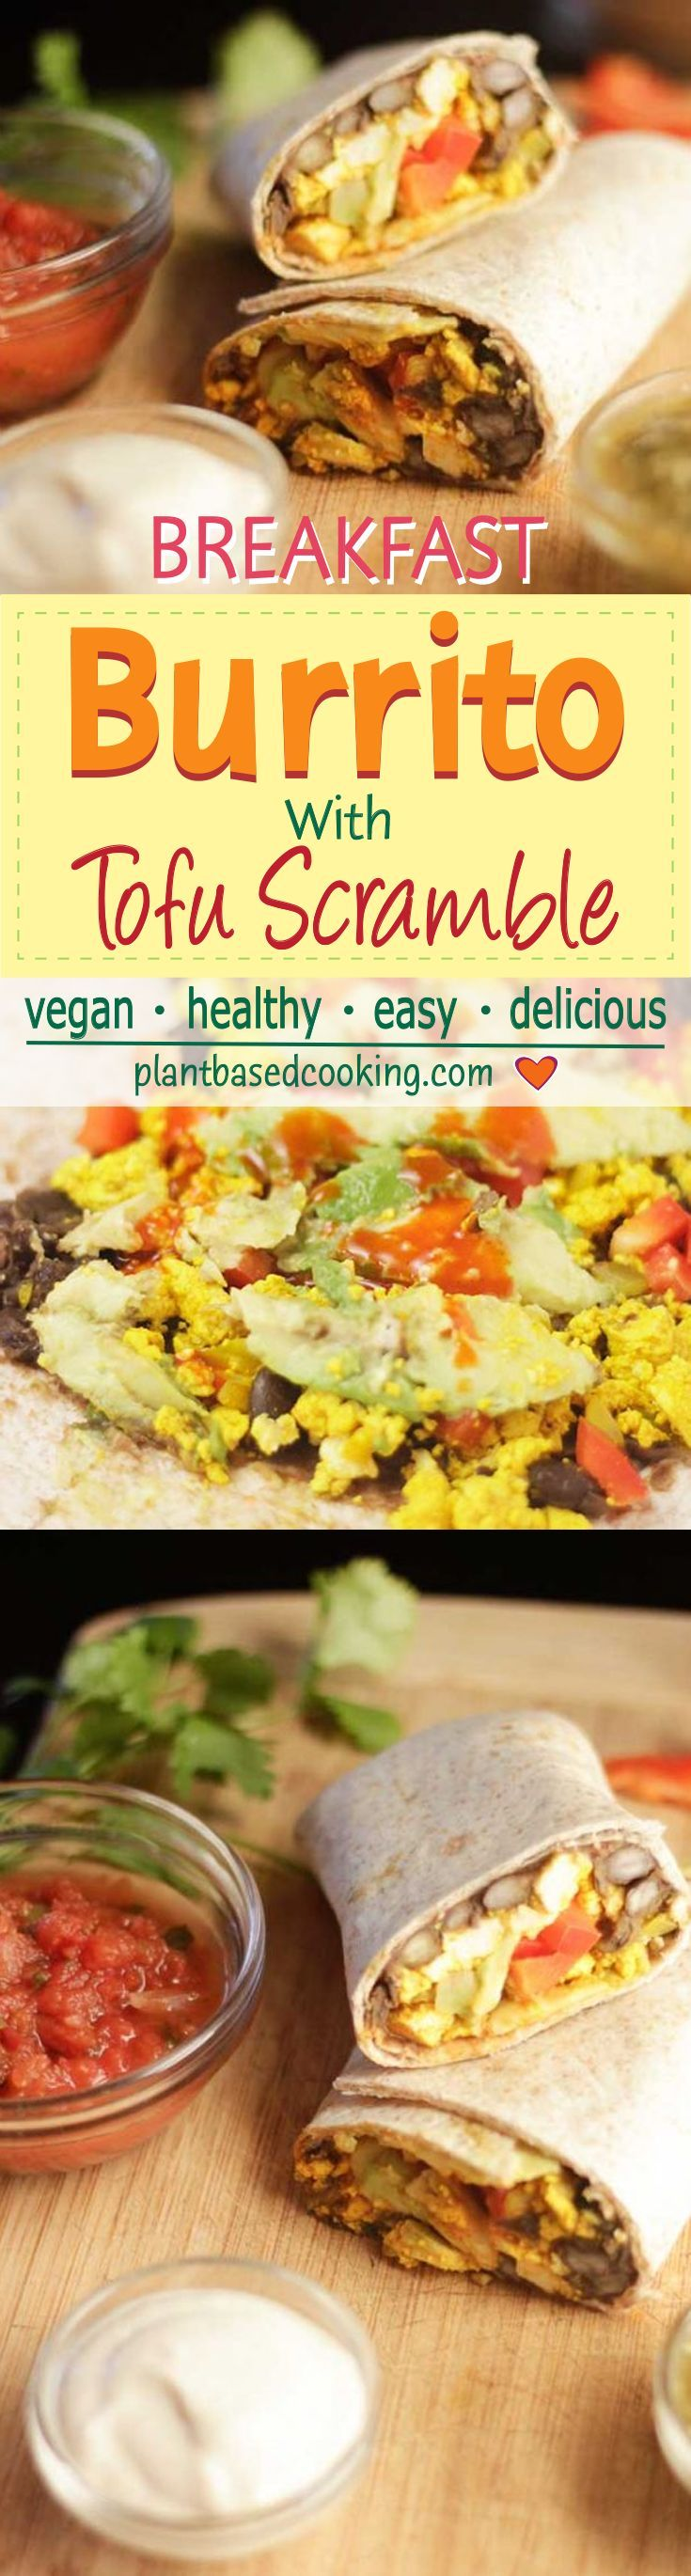 Breakfast Burrito with Tofu Scramble - Looking for a savory breakfast? Beans, tofu scramble, avocado and salsa in a whole grain tortilla does the trick. Quick and easy.